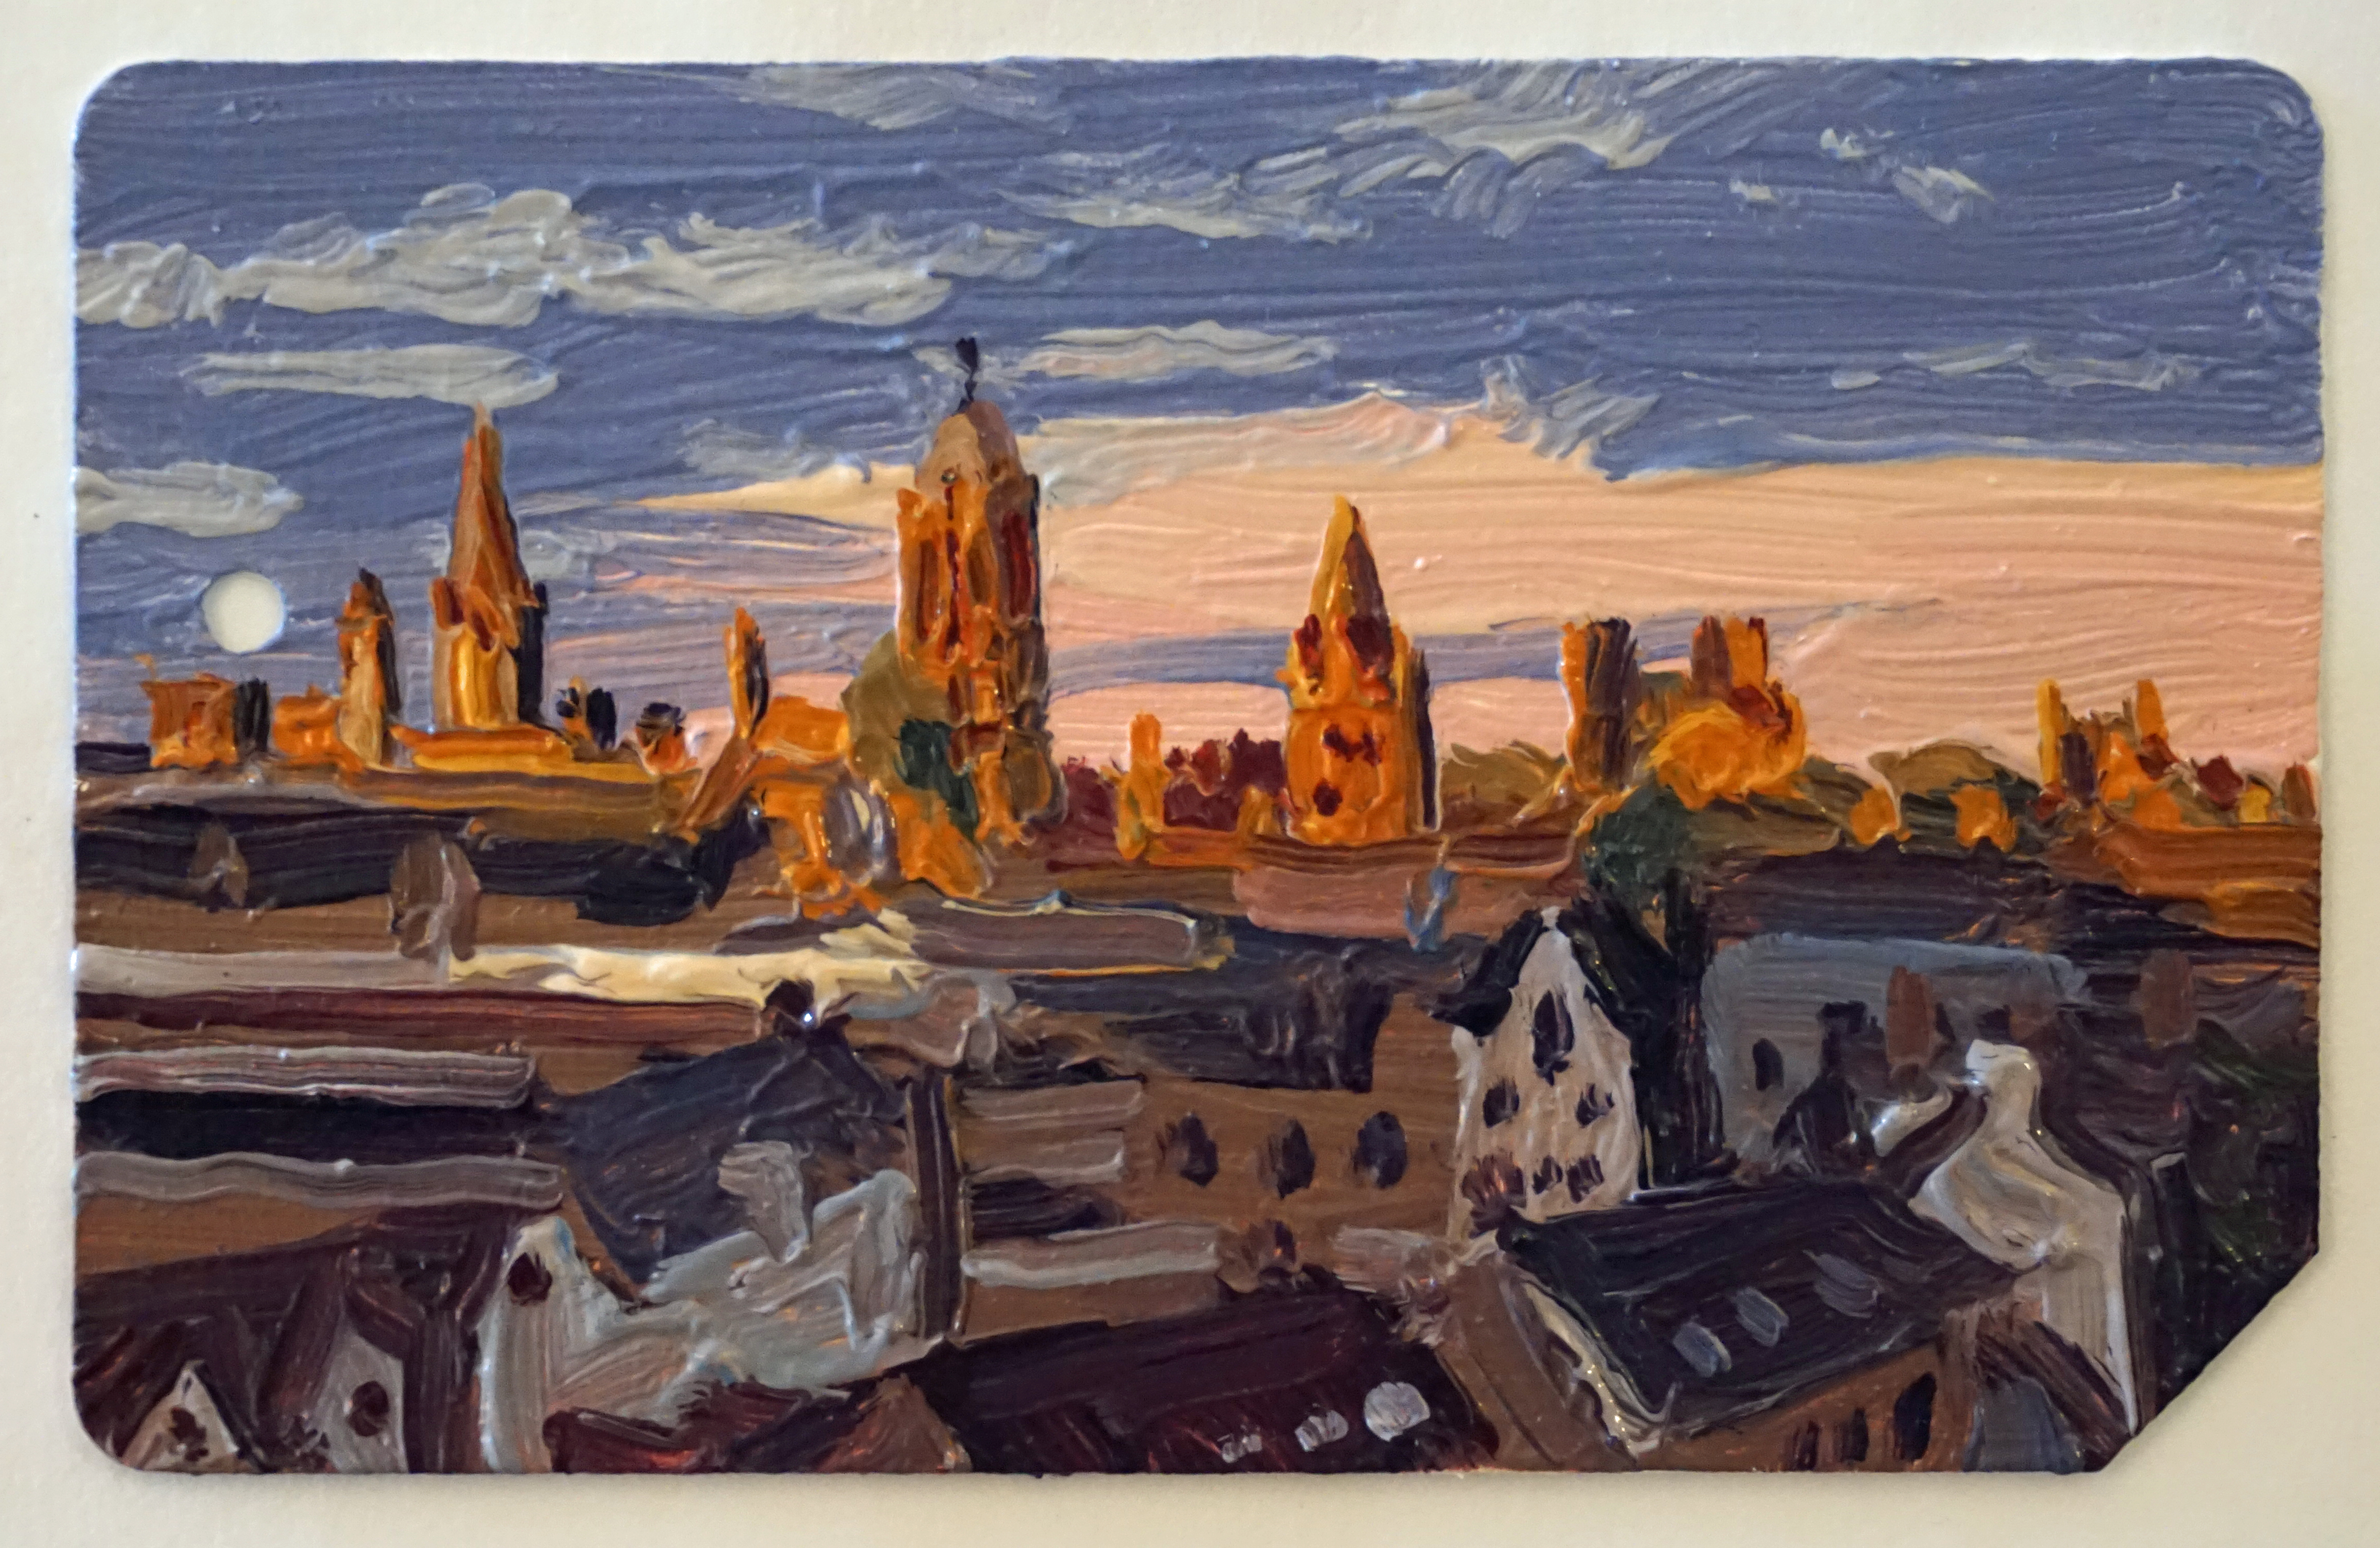 Sunset_Oxford_Spires_Oil_on_NYC_Metrocard_Painting_2x3_Maud_Taber_Thomas_Washington_DC_Georgetown